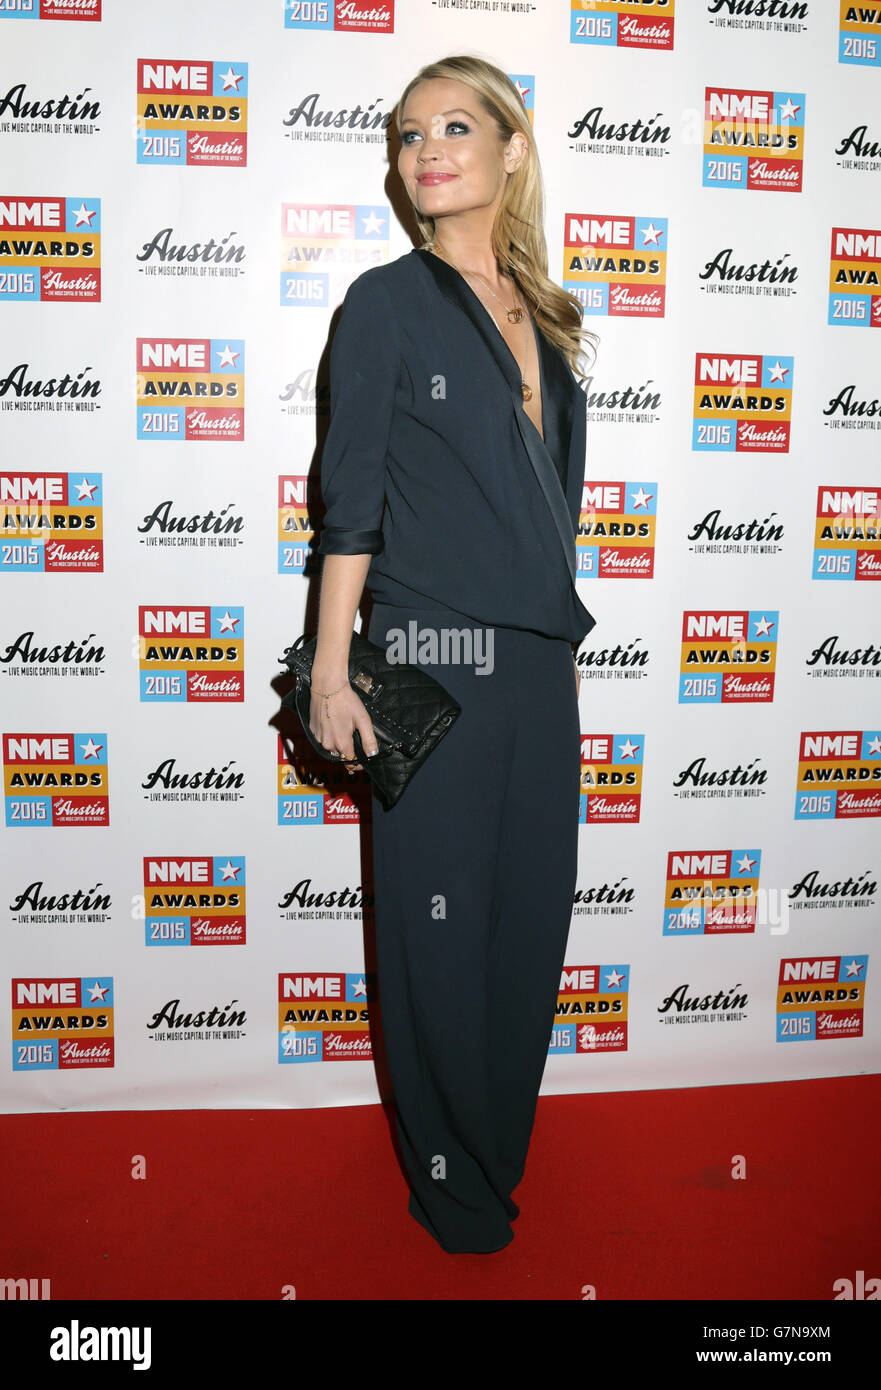 NME Awards 2015 with Austin Texas - London - Stock Image